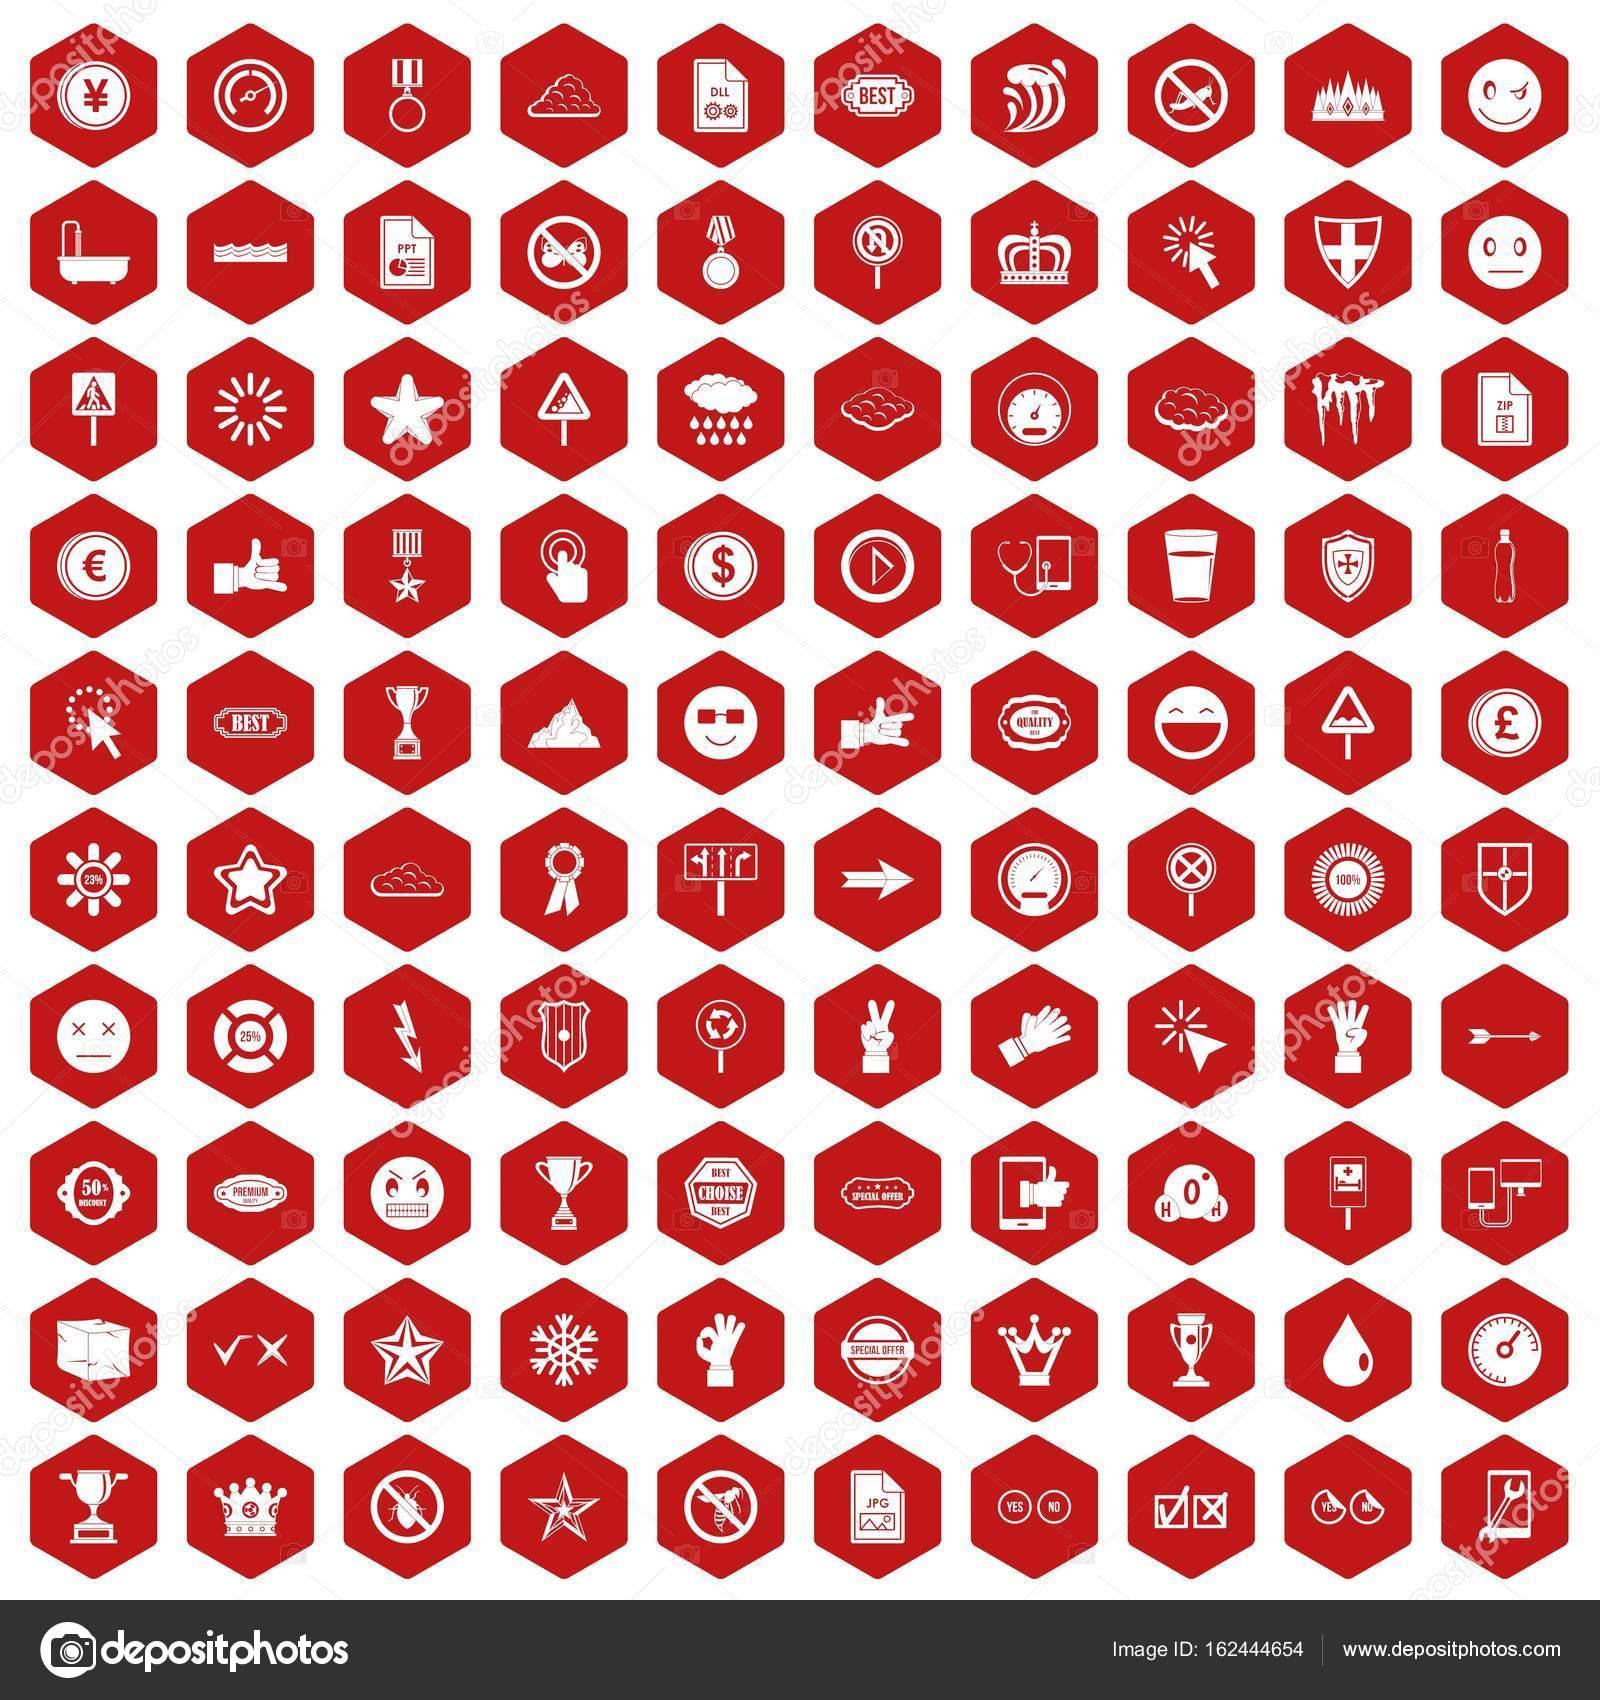 100 symbol icons hexagon red stock vector ylivdesign 162444654 100 symbol icons hexagon red stock vector buycottarizona Image collections